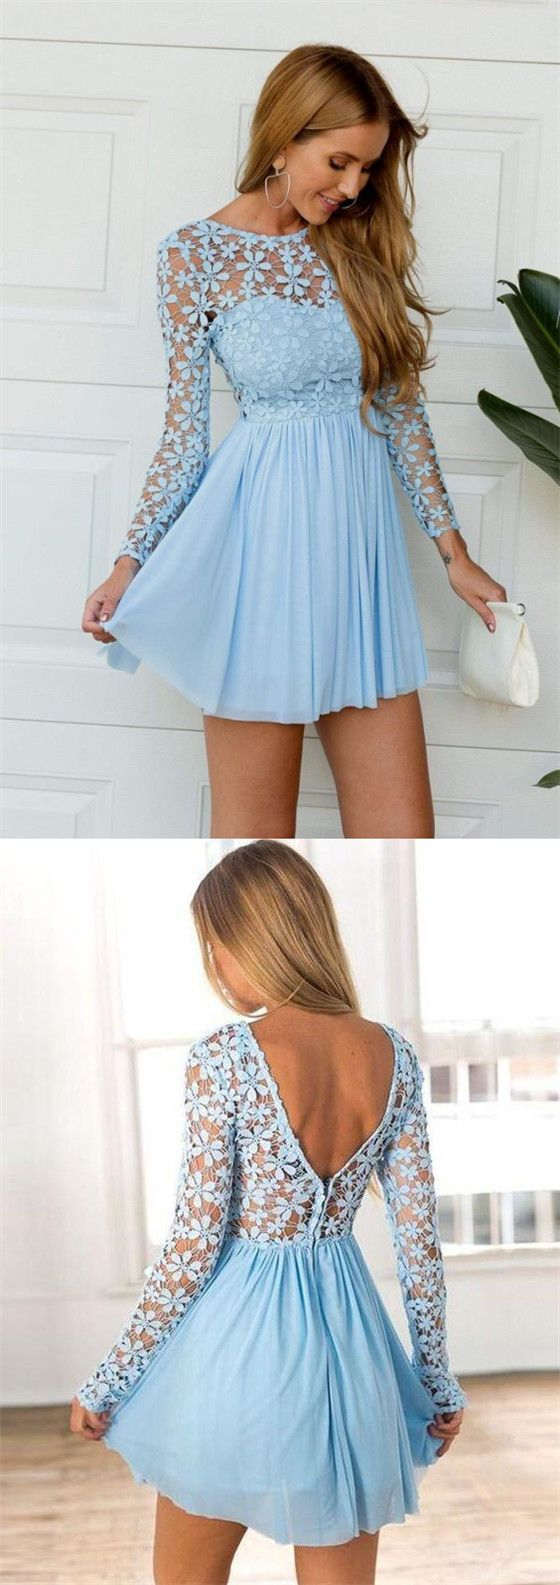 Charming blue illusion lace top see through long sleeves aline